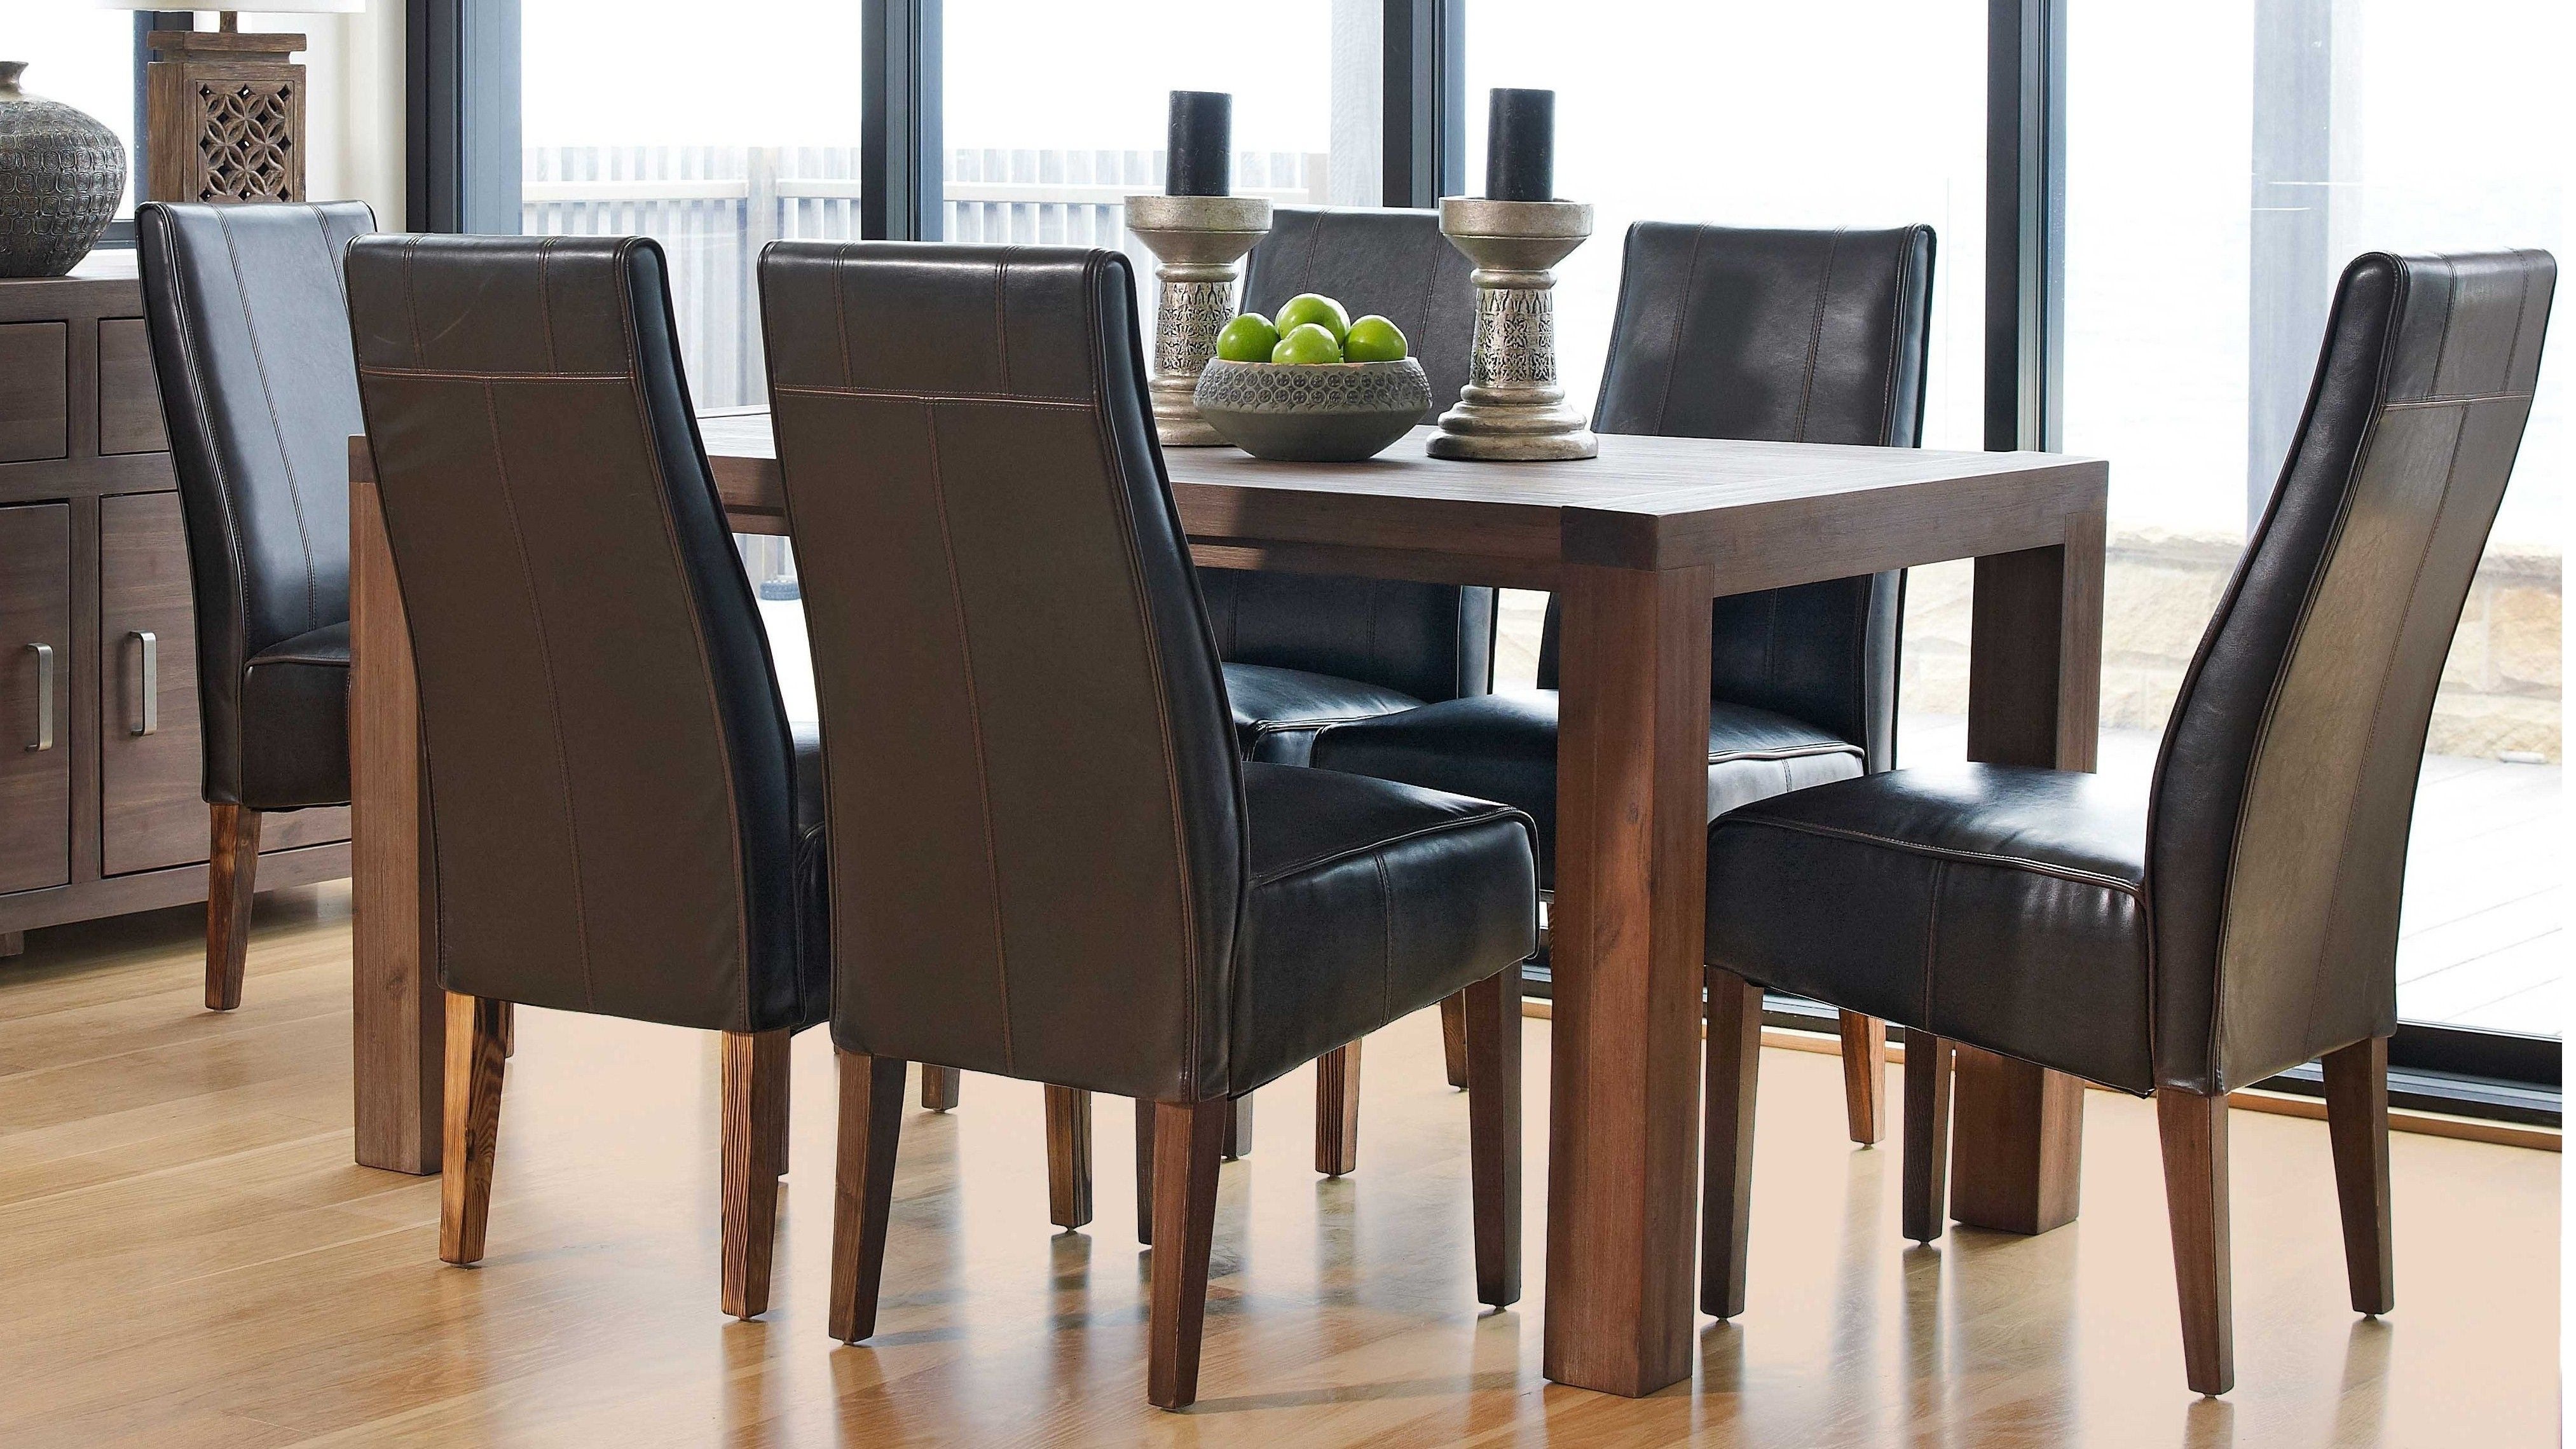 House Of Fraser Dining Room Furniture Glamorous Fraser 1800 7 Piece Dining Setting  House  Pinterest  Dining 2018